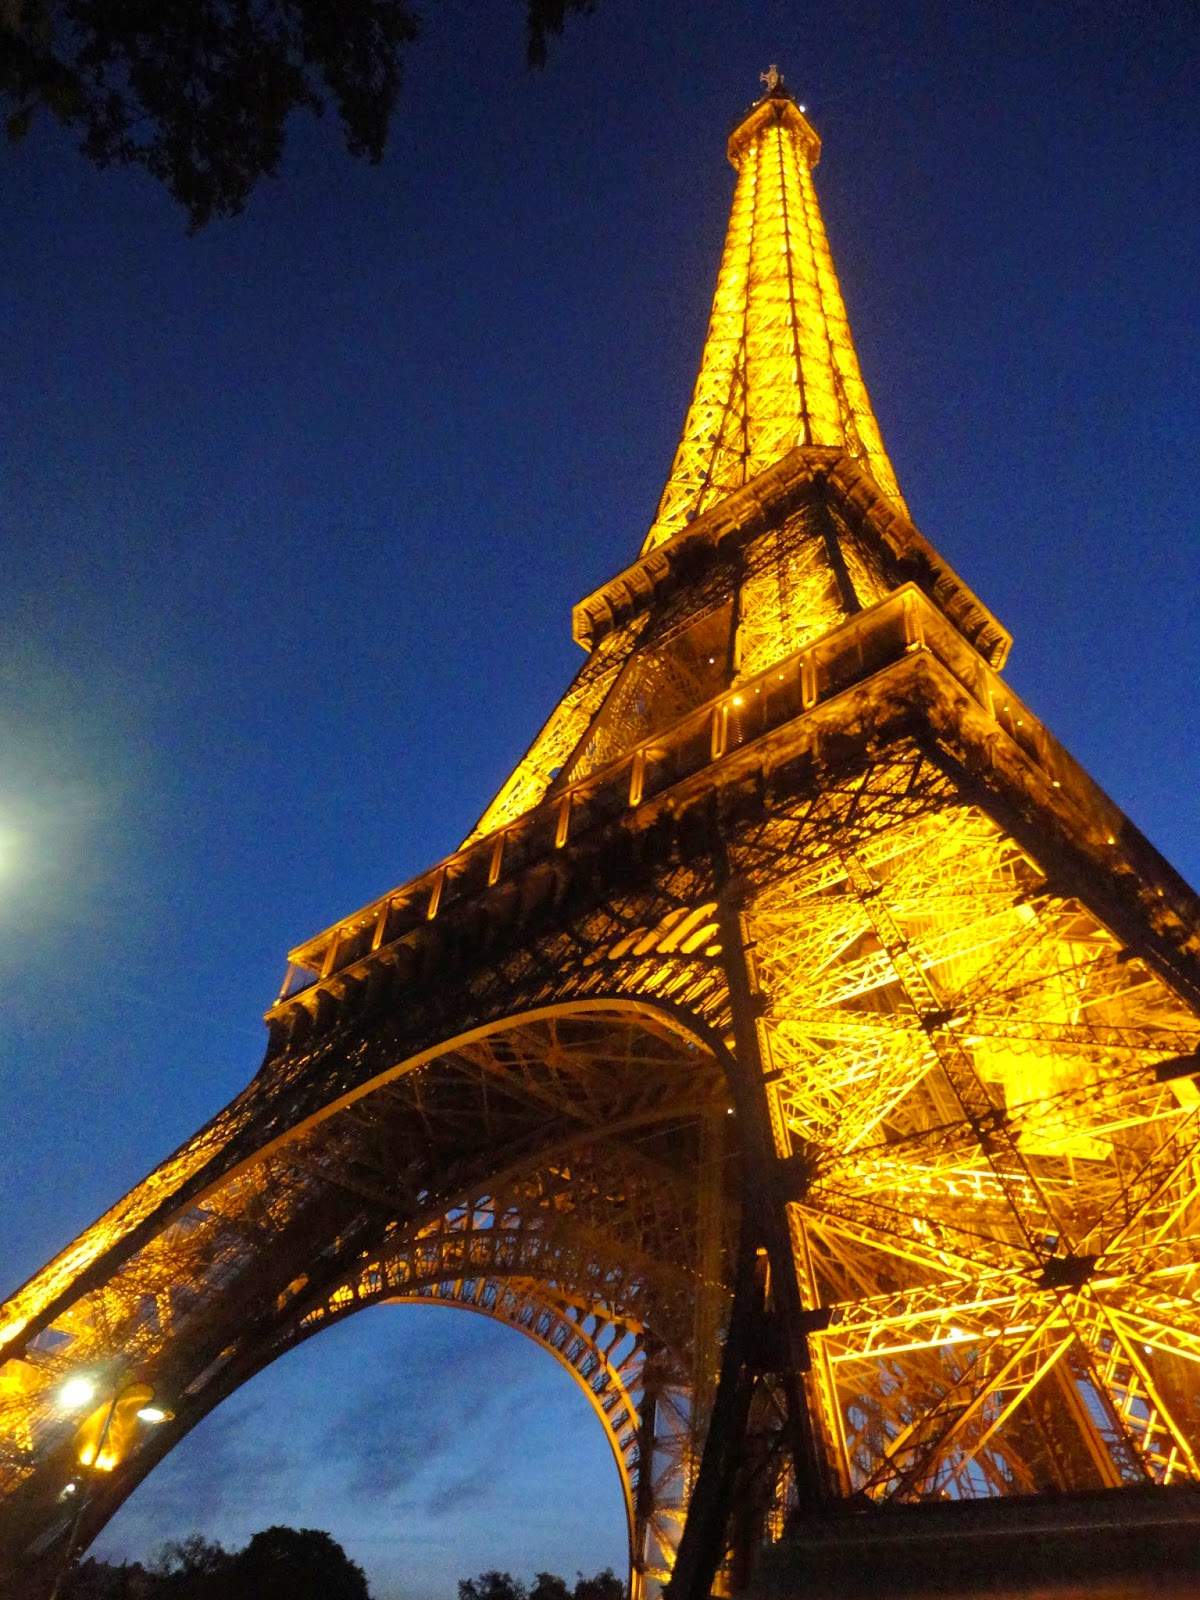 Eiffel Tower at night, Paris